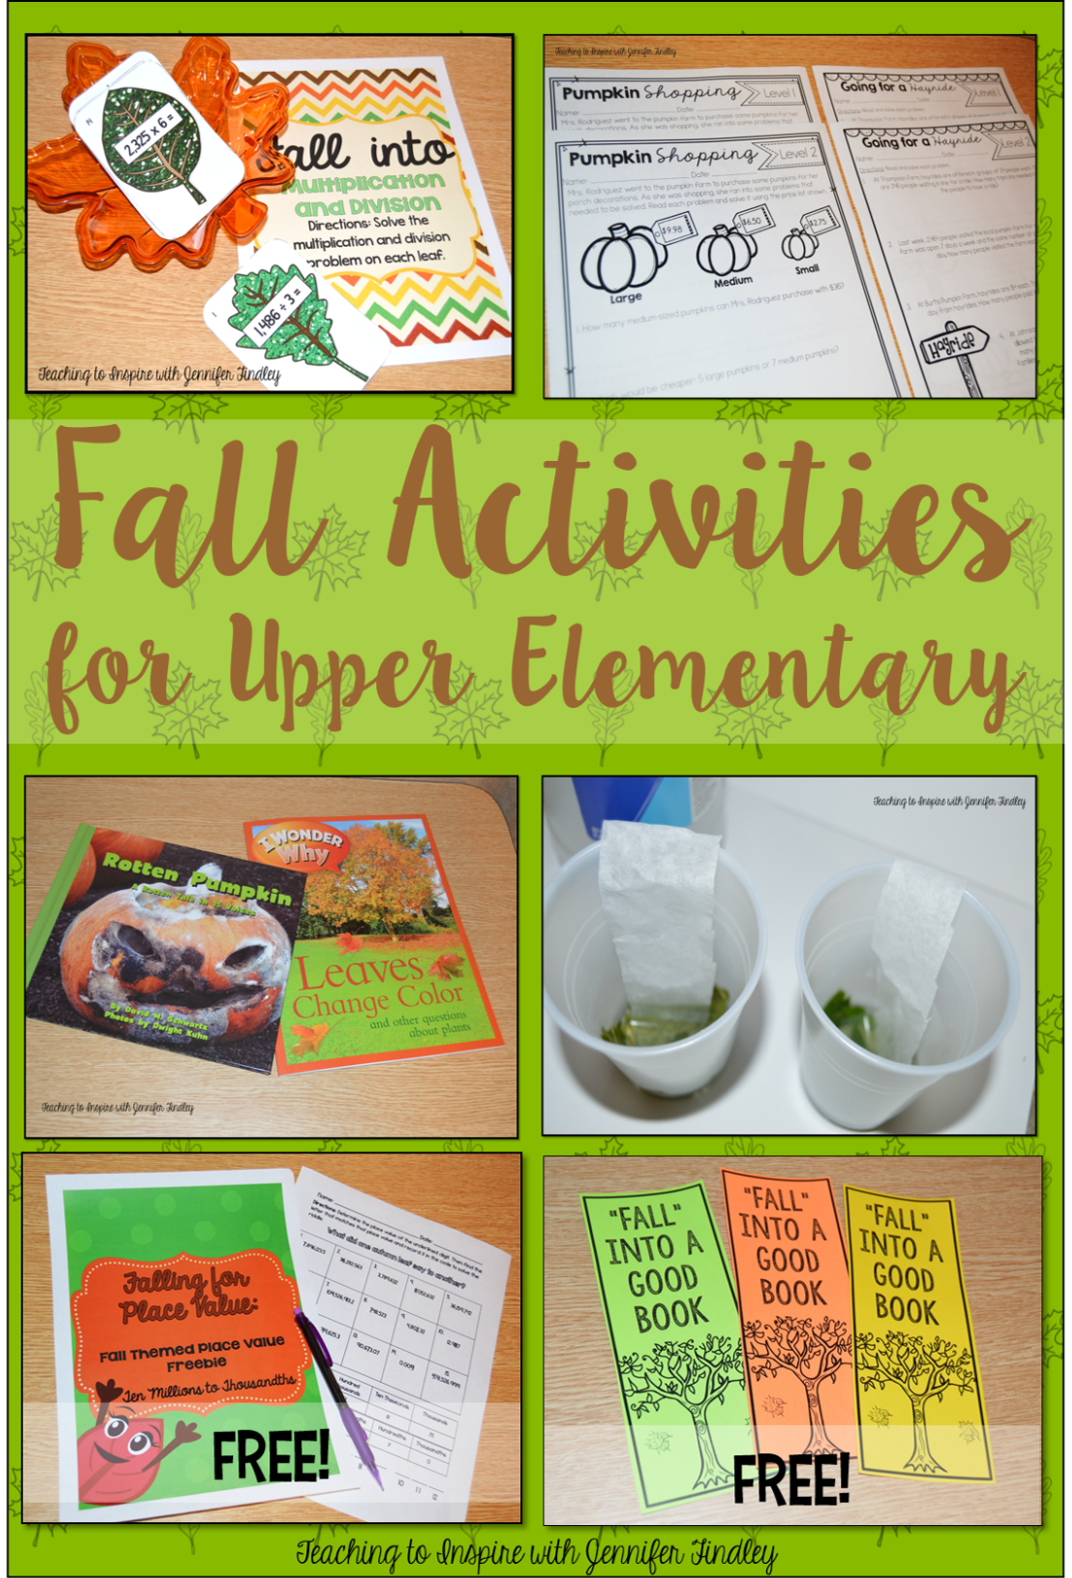 Elementary Classroom Ideas ~ Fall activities for upper elementary classrooms